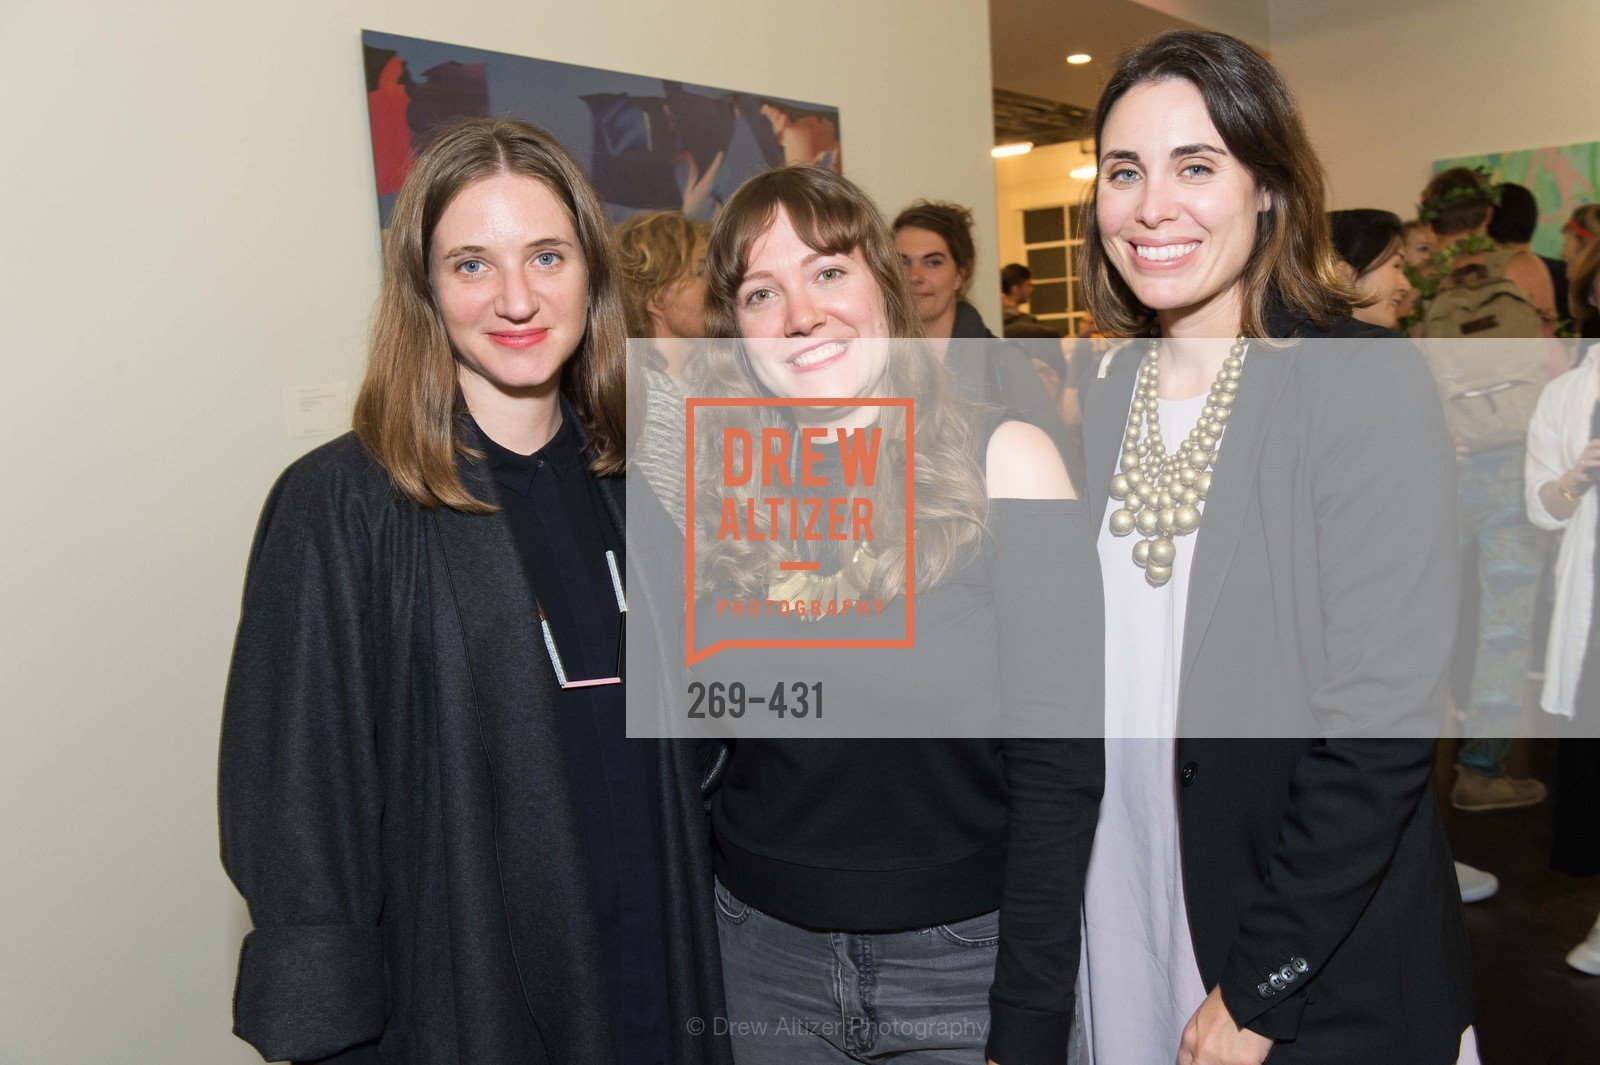 Amee Friberg, Amanda Schneider, Artsy + Sotheby's Closing Party, Fused. 1401 16th Street, October 30th, 2015,Drew Altizer, Drew Altizer Photography, full-service event agency, private events, San Francisco photographer, photographer California